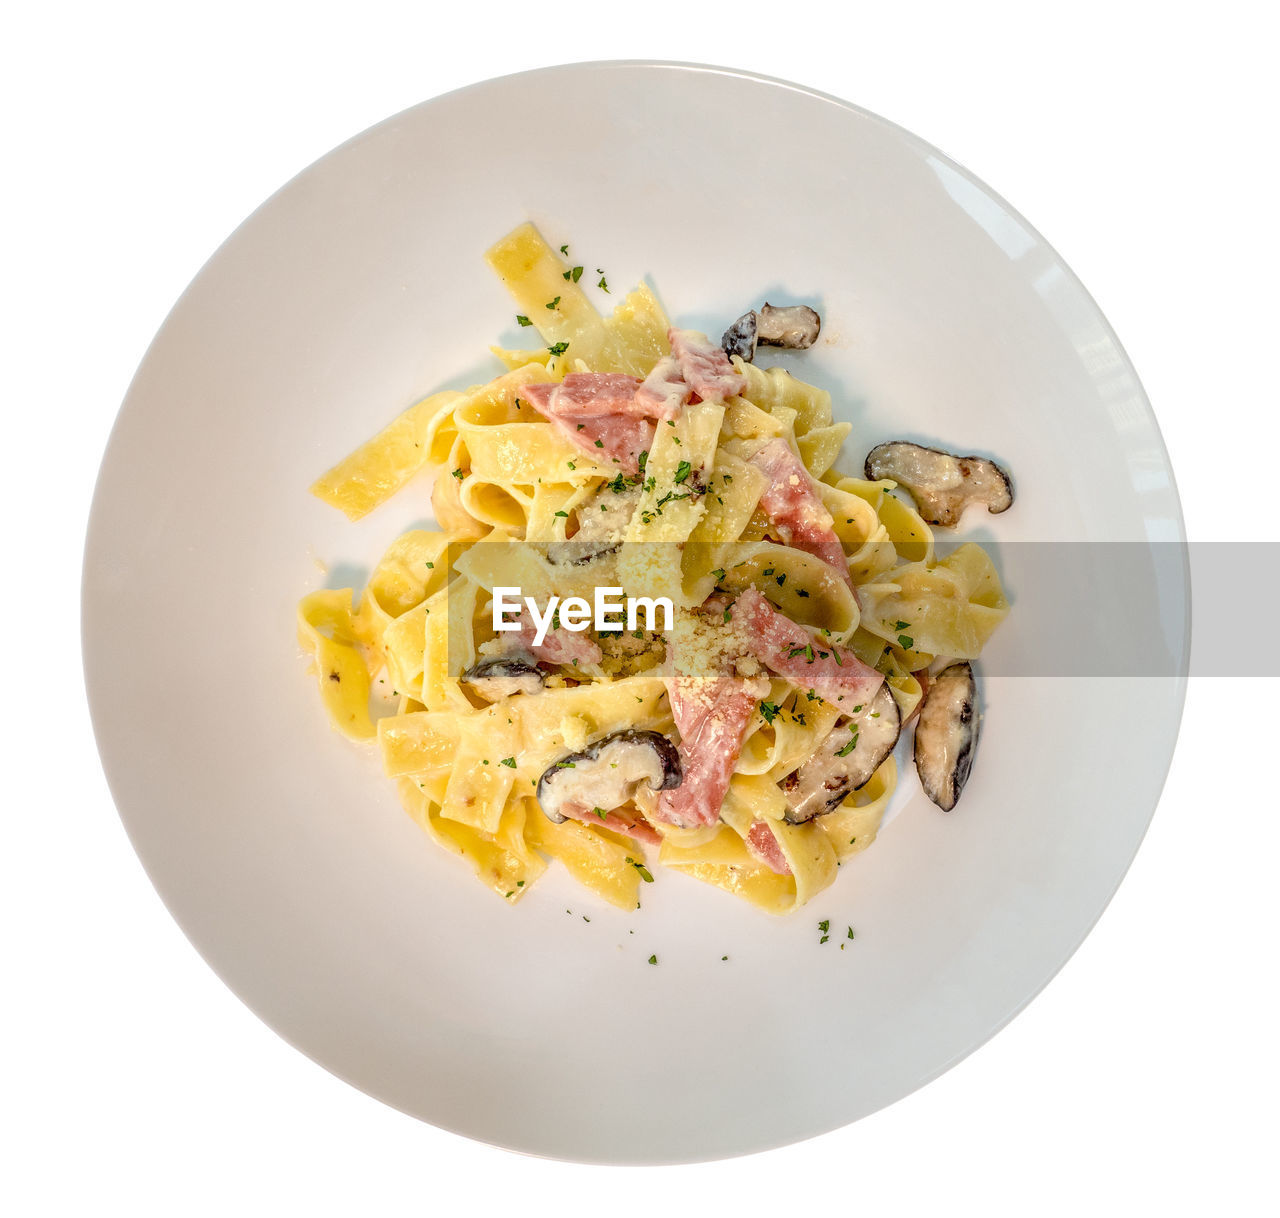 food, food and drink, ready-to-eat, studio shot, freshness, plate, indoors, directly above, serving size, white background, wellbeing, still life, healthy eating, no people, high angle view, close-up, vegetable, italian food, meal, pasta, garnish, breakfast, temptation